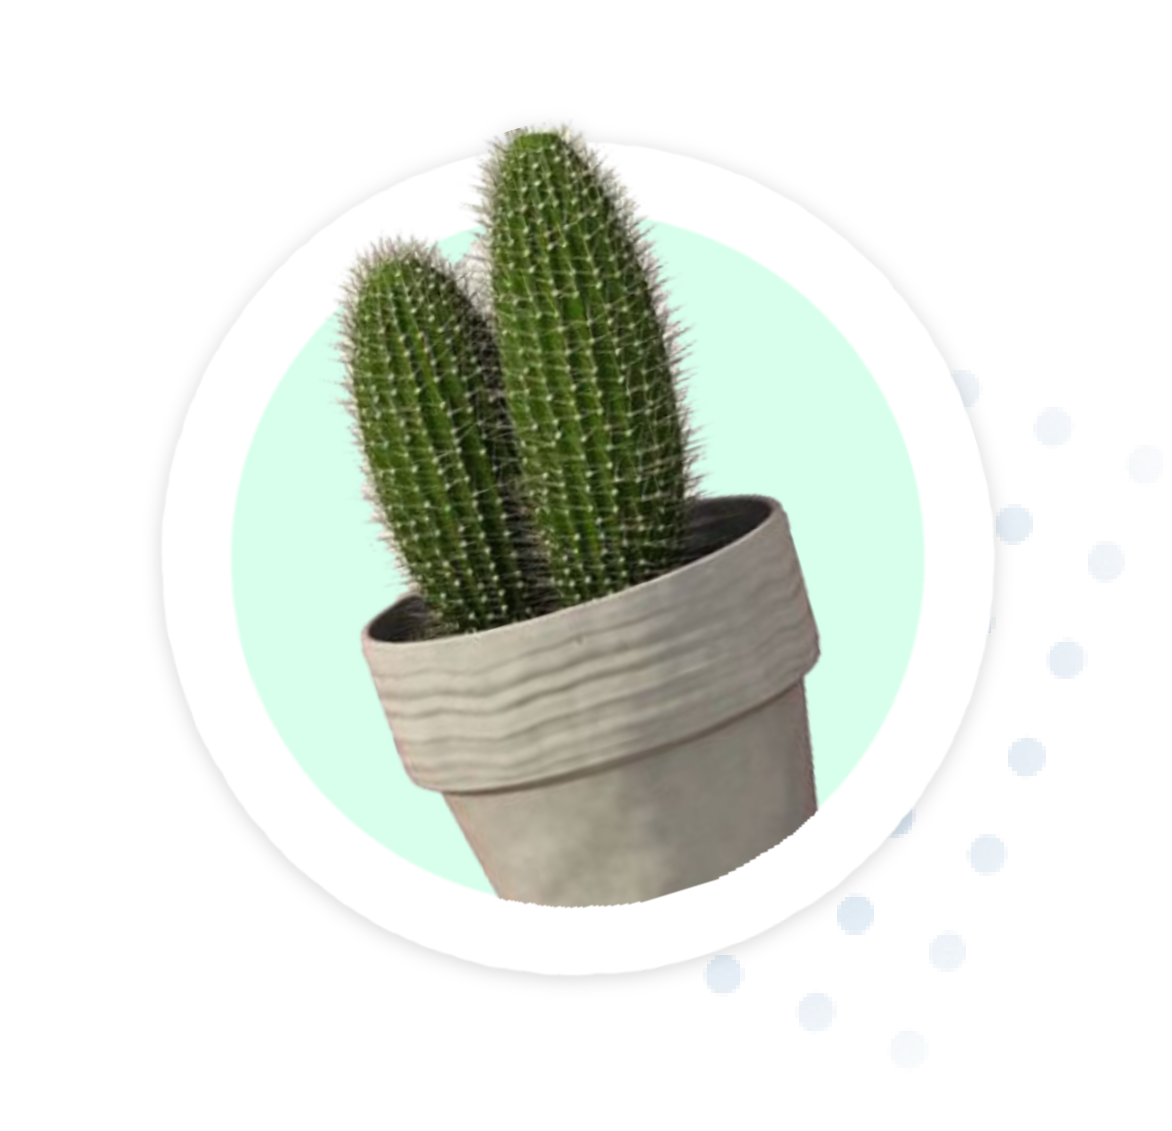 cactus footer